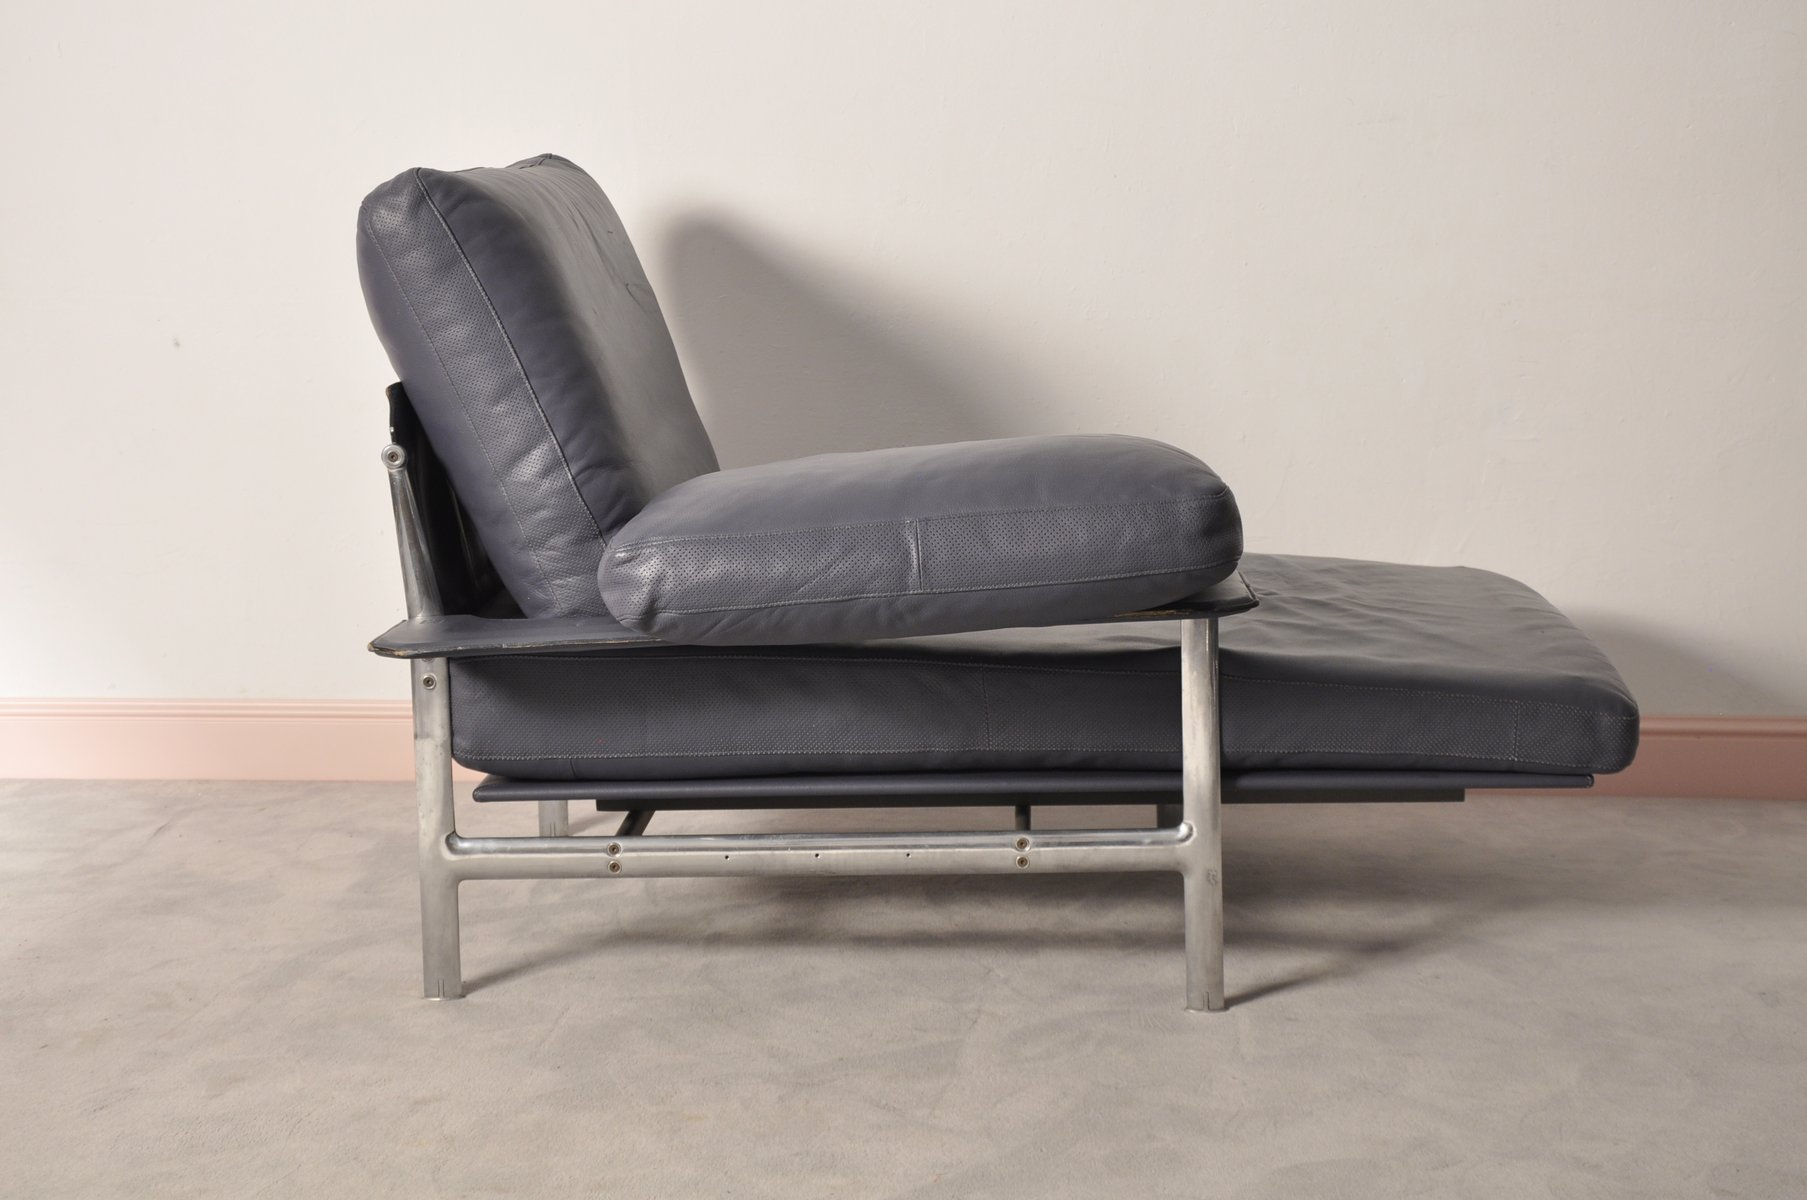 Diesis chaise longue by paolo nava antonio citterio for for Chaise longue 2 personnes